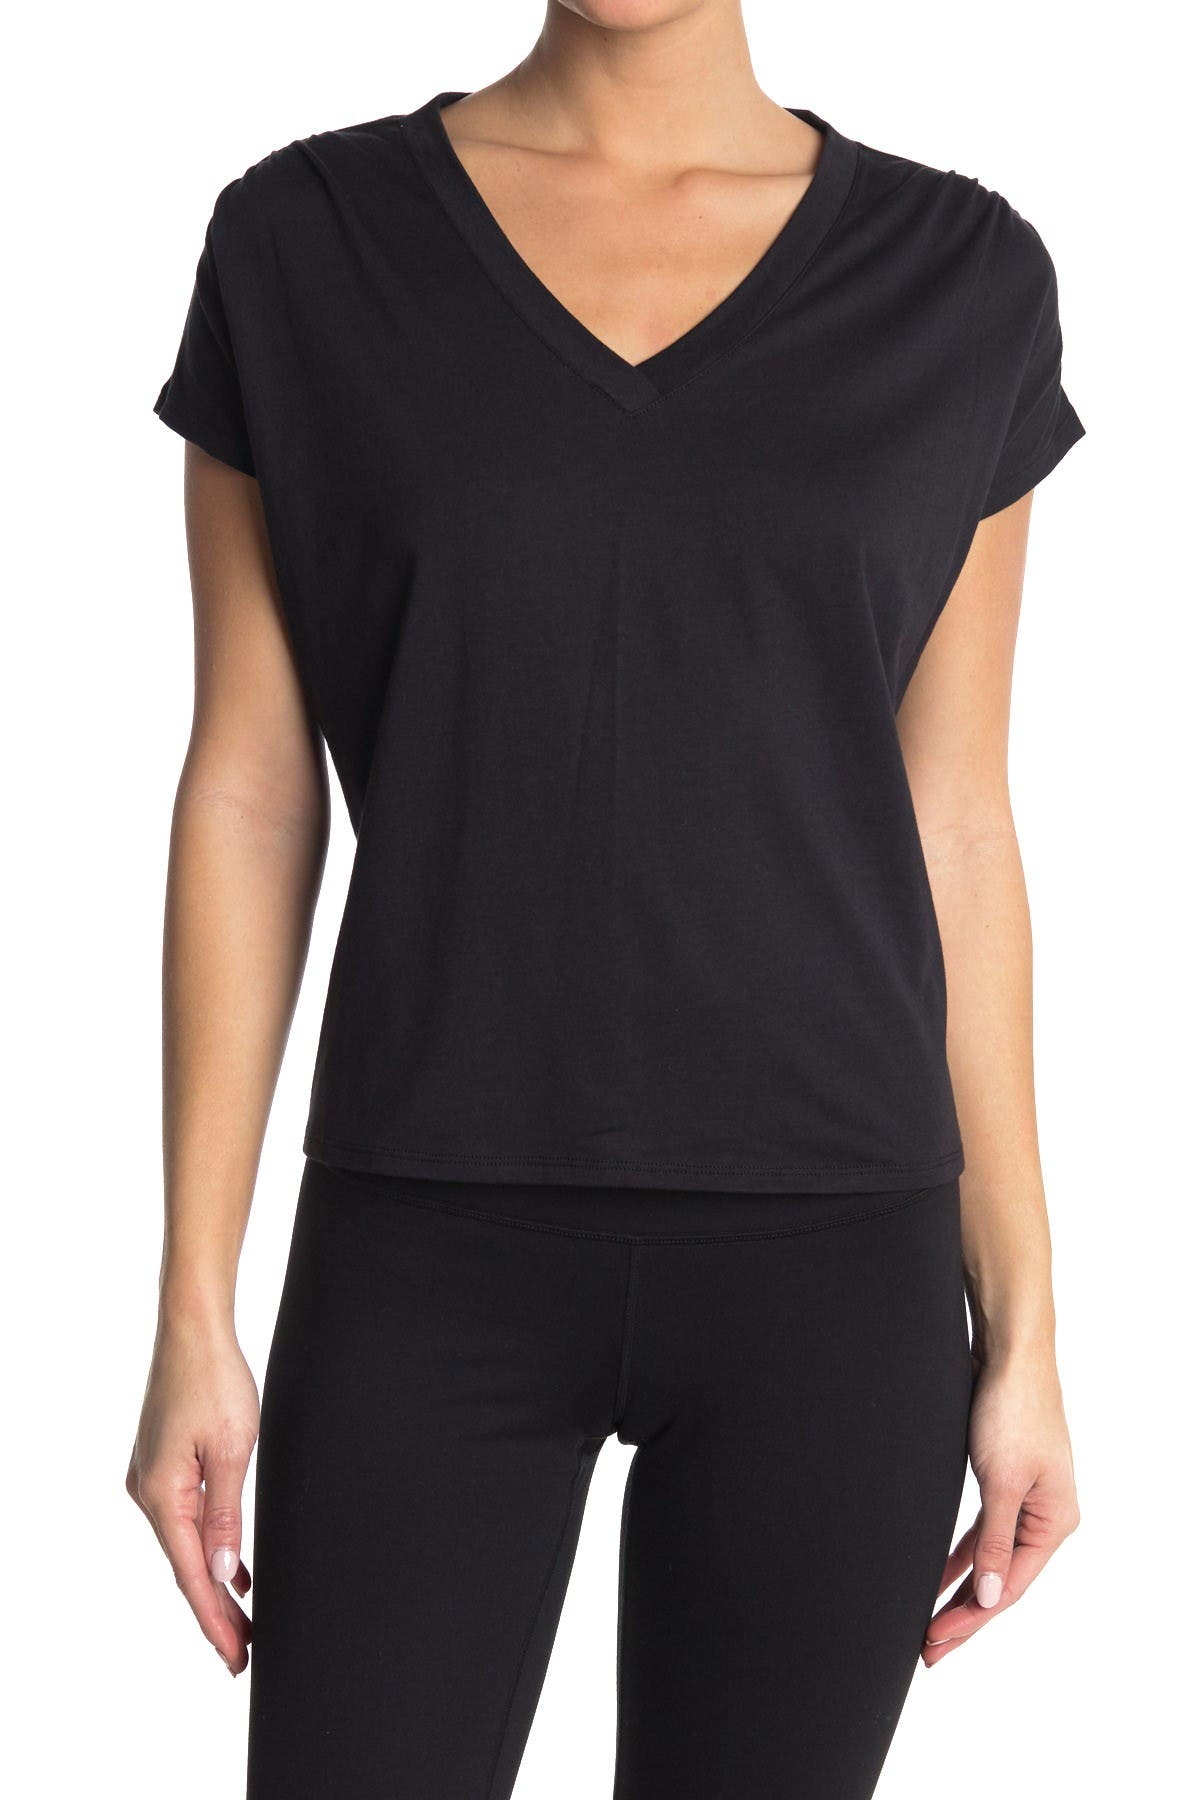 Image of Z By Zella Re-Gen V-Neck T-Shirt